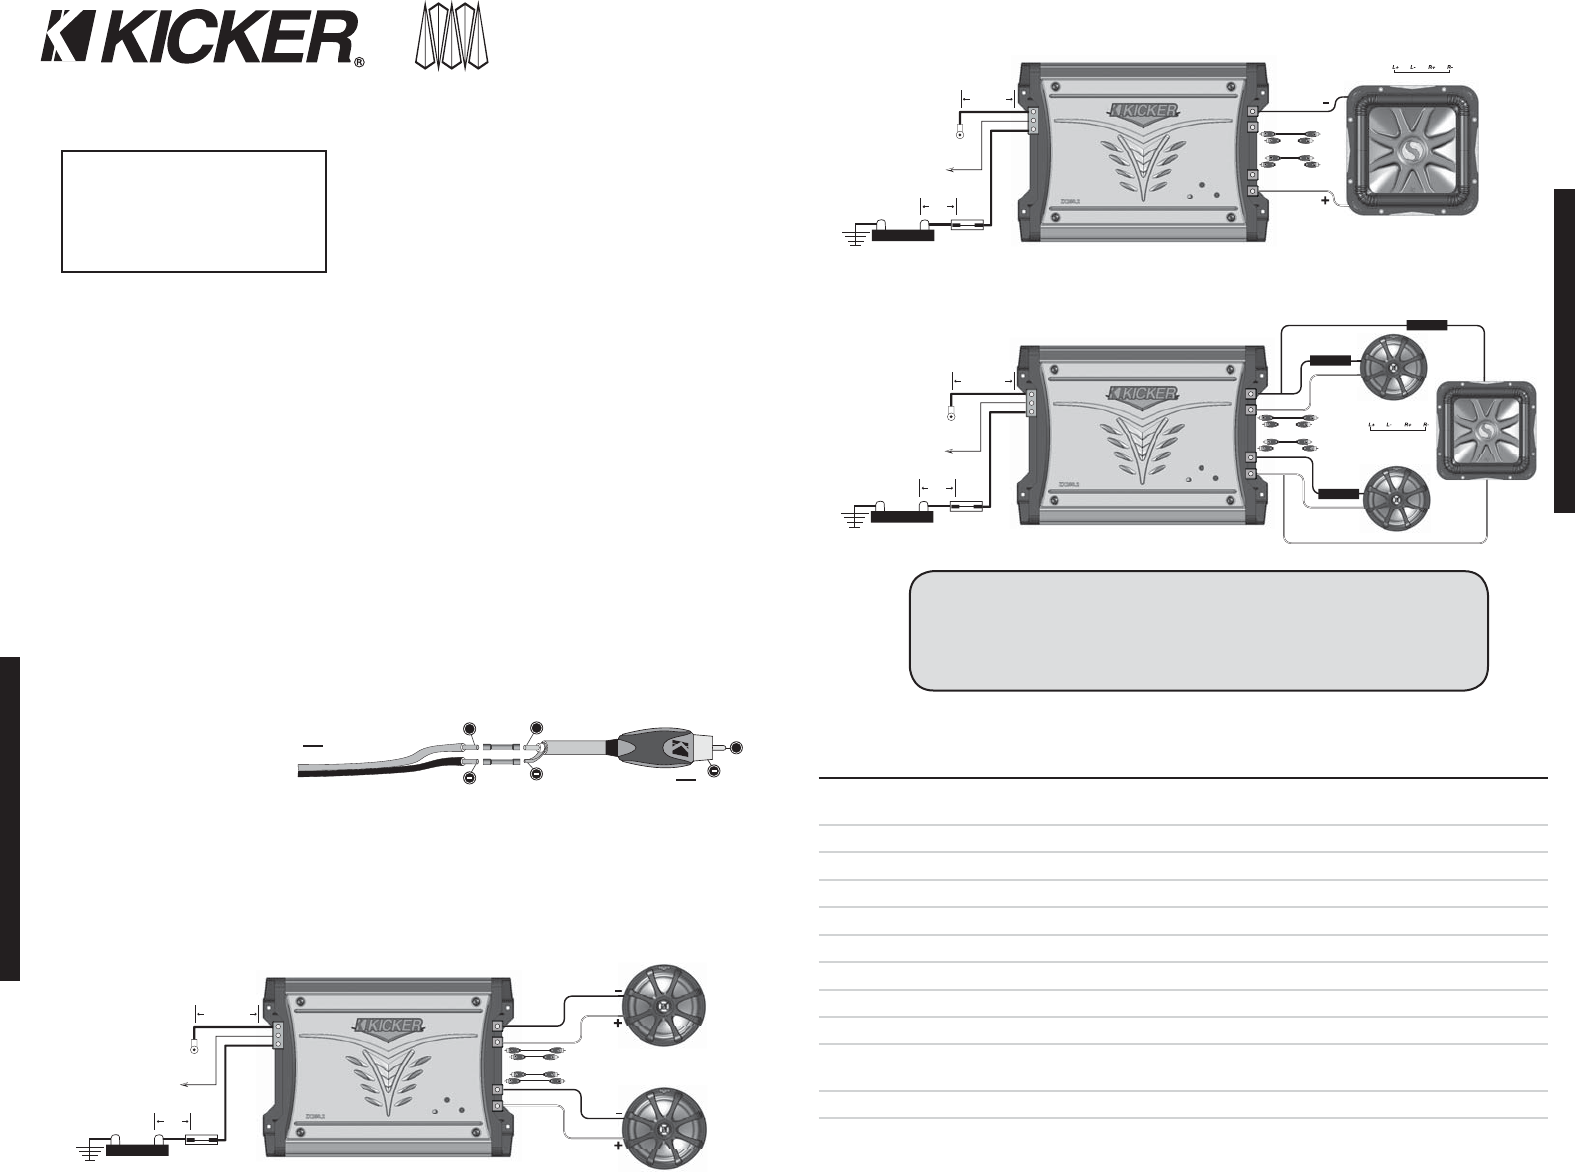 03ca3282 0eaf bb54 355e ea3974394e67 bg2 page 2 of kicker stereo amplifier zx350 2 user guide kicker led speaker wiring diagram at reclaimingppi.co